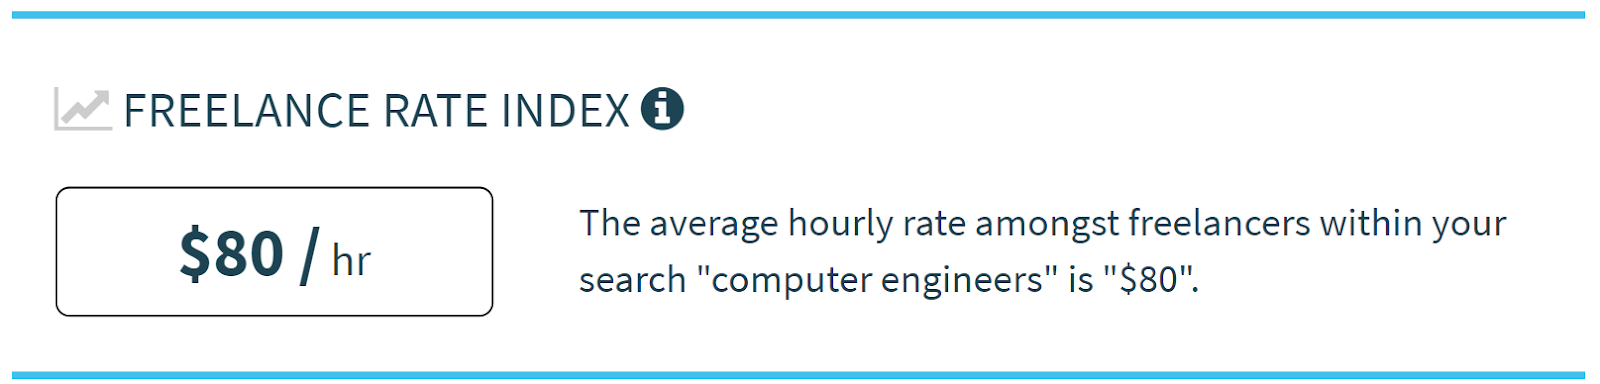 $ 80 / hr: Average hourly rate for freelance computer engineers